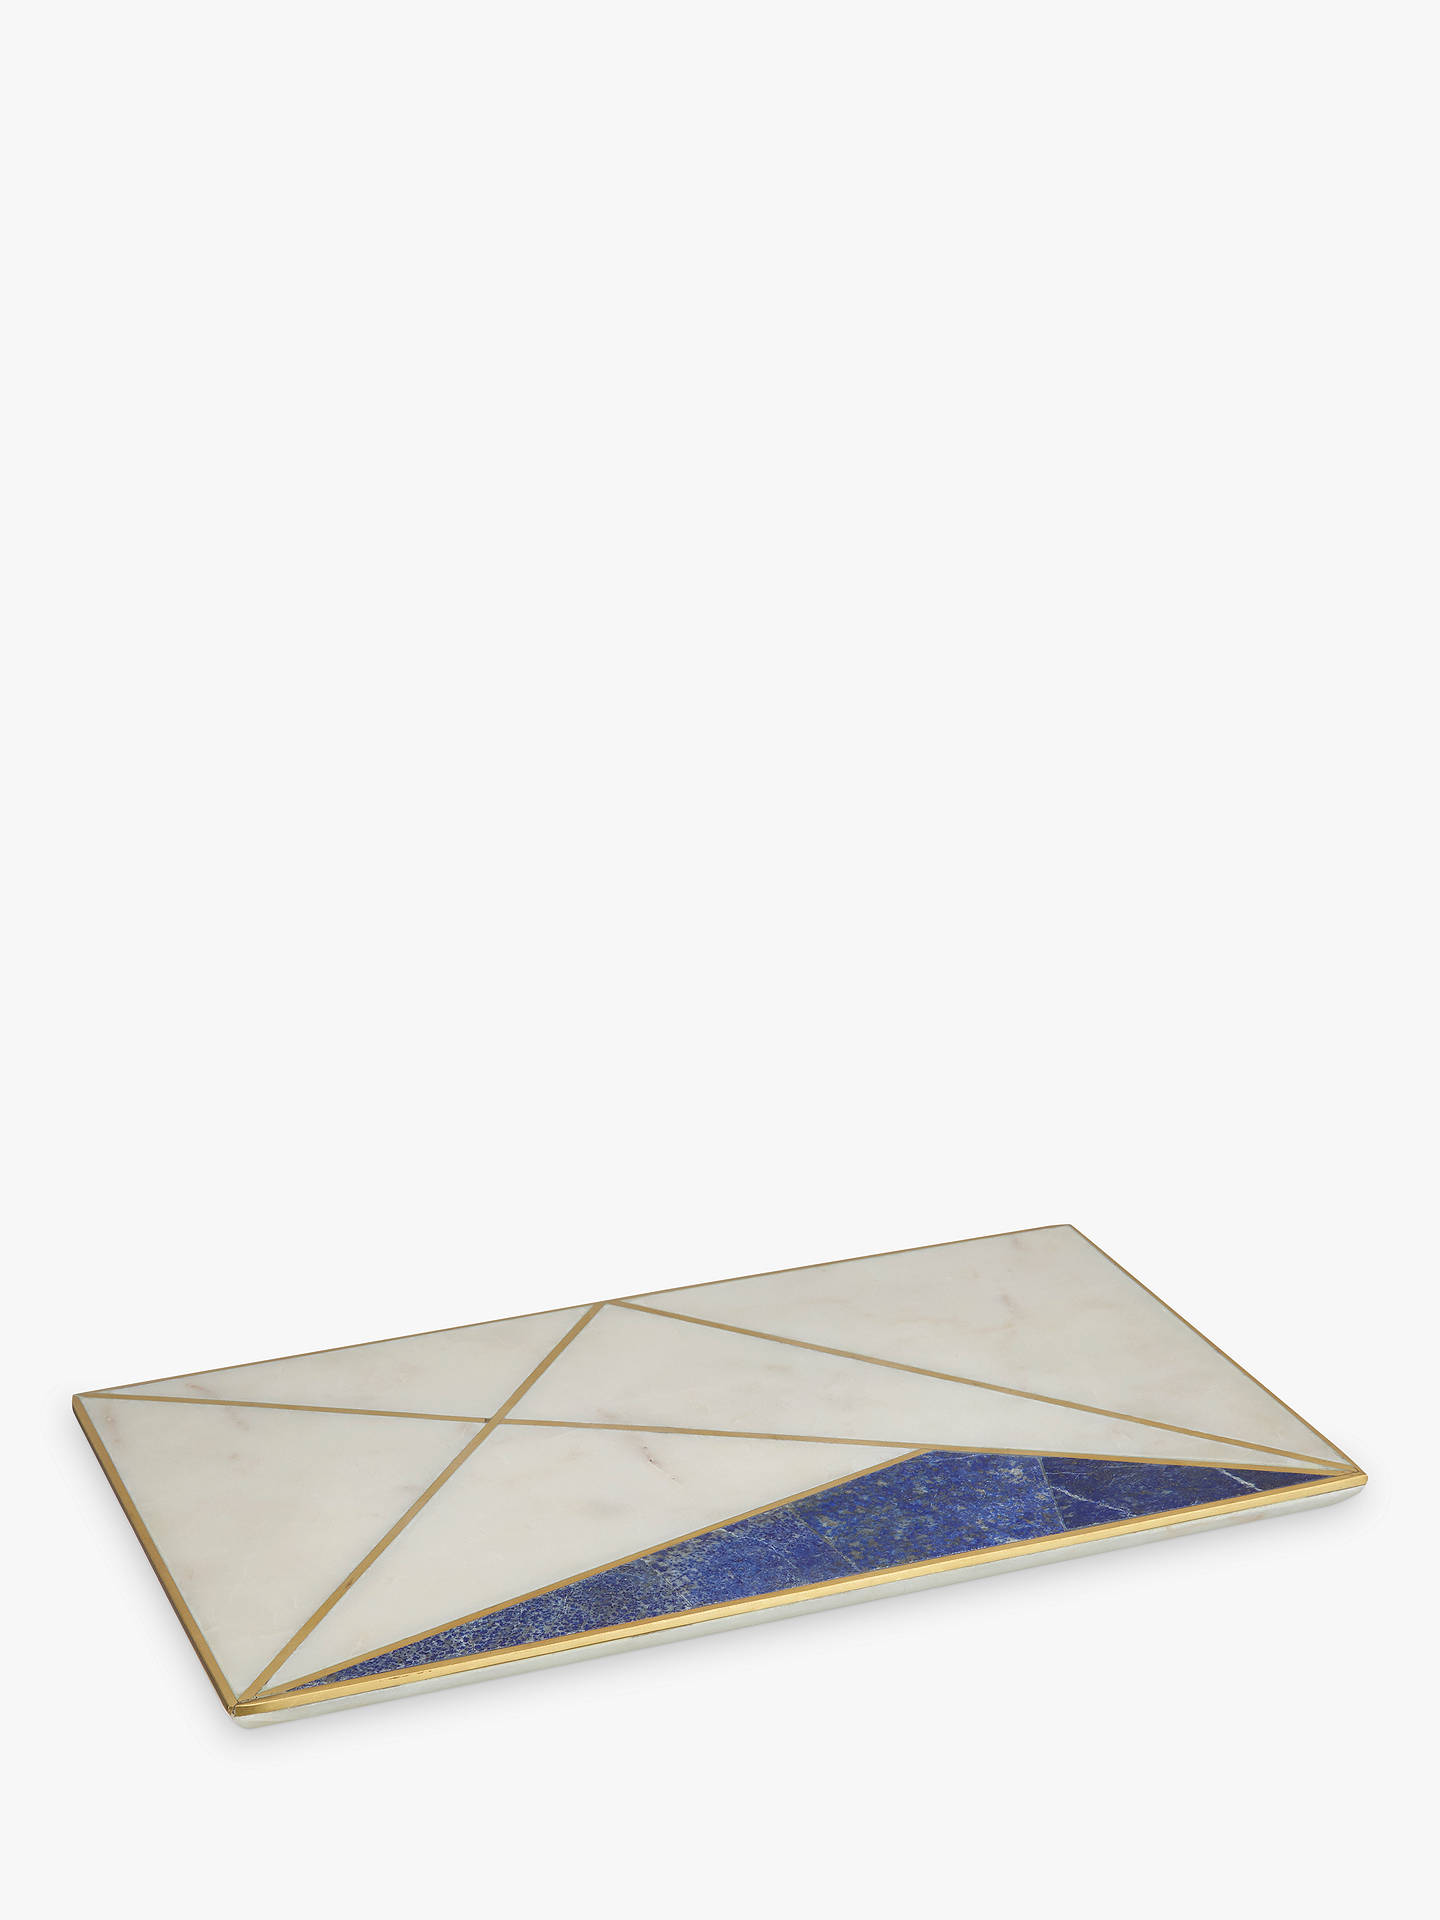 BuyJohn Lewis & Partners Marble and Lapis Platter, White/Blue Online at johnlewis.com